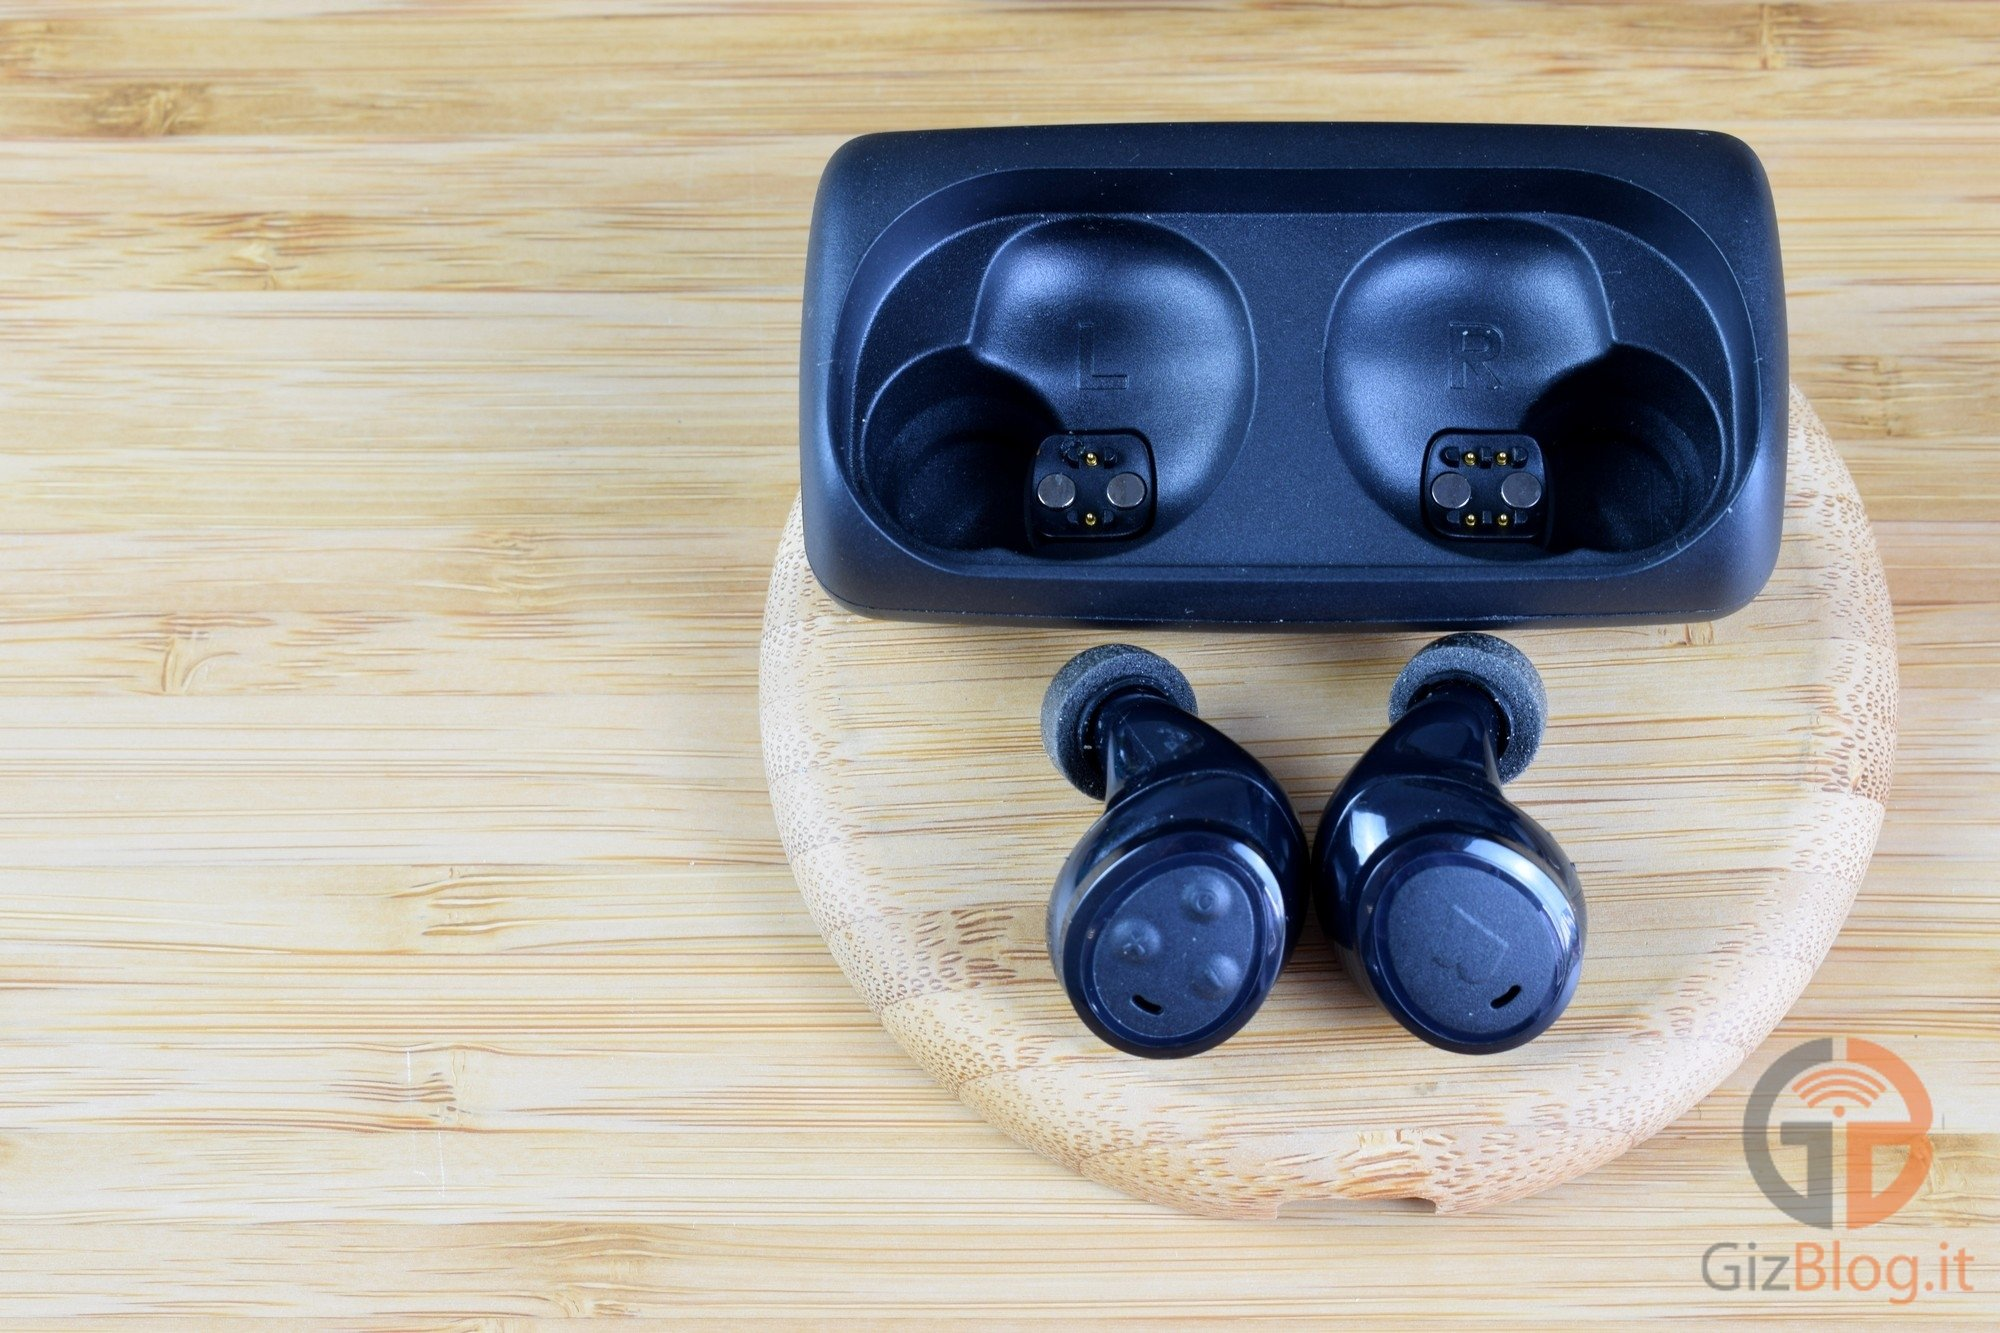 Bragi - The Headphone - Recensione GizBlog - Dock